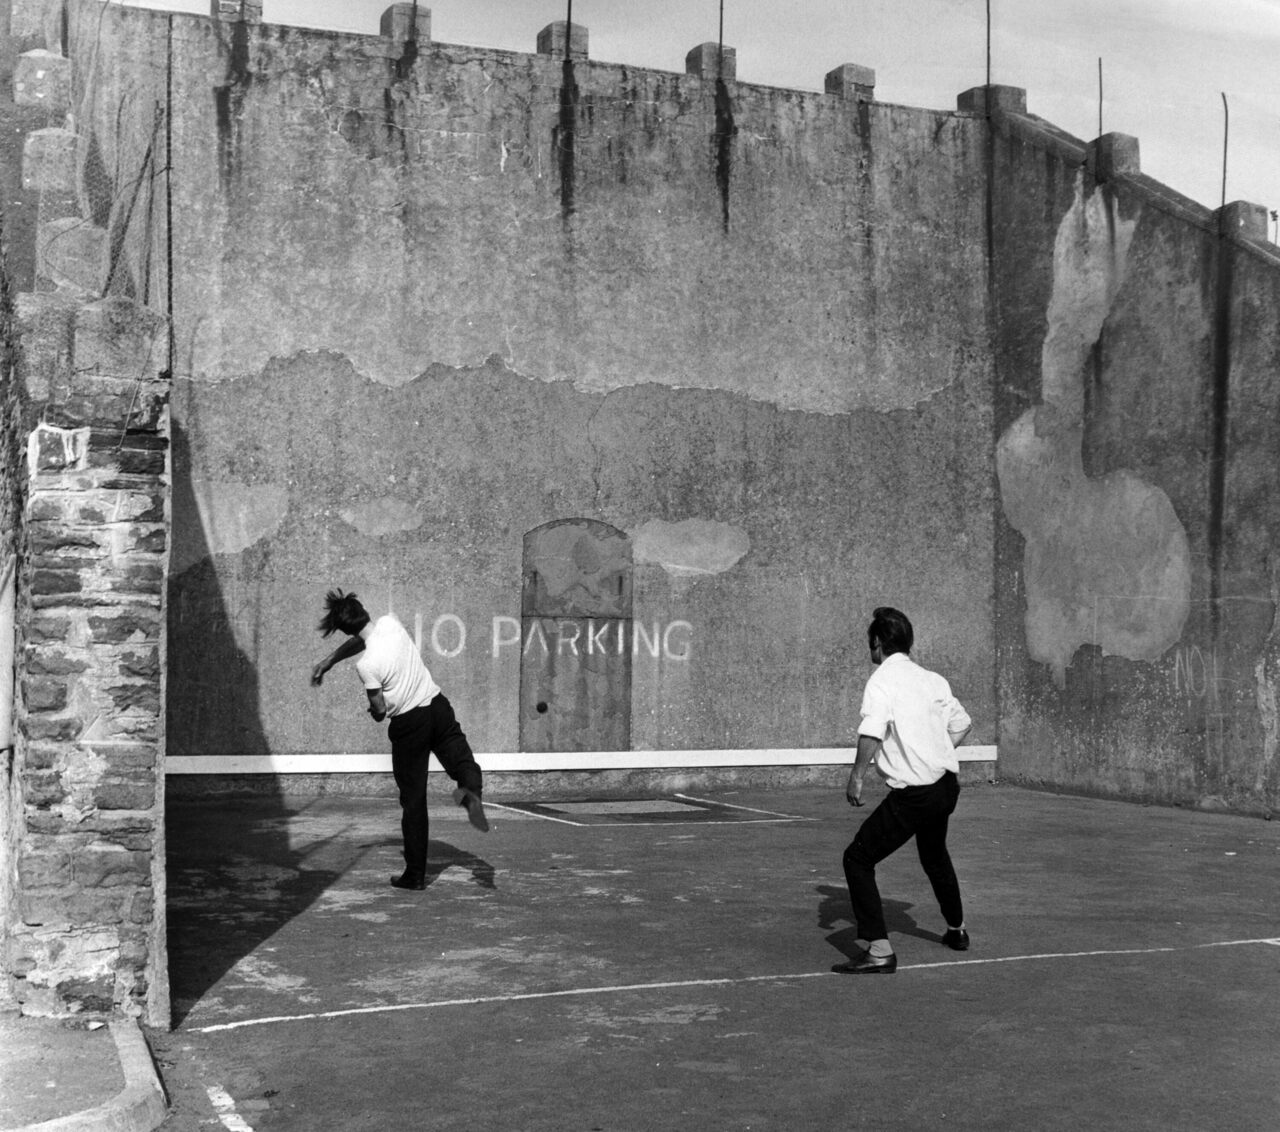 The handball court in Nelson, South Wales, August 8, 1969. The three-walled court and home to Pêl-Law, the Welsh version of the game, has stood in the town since 1860.